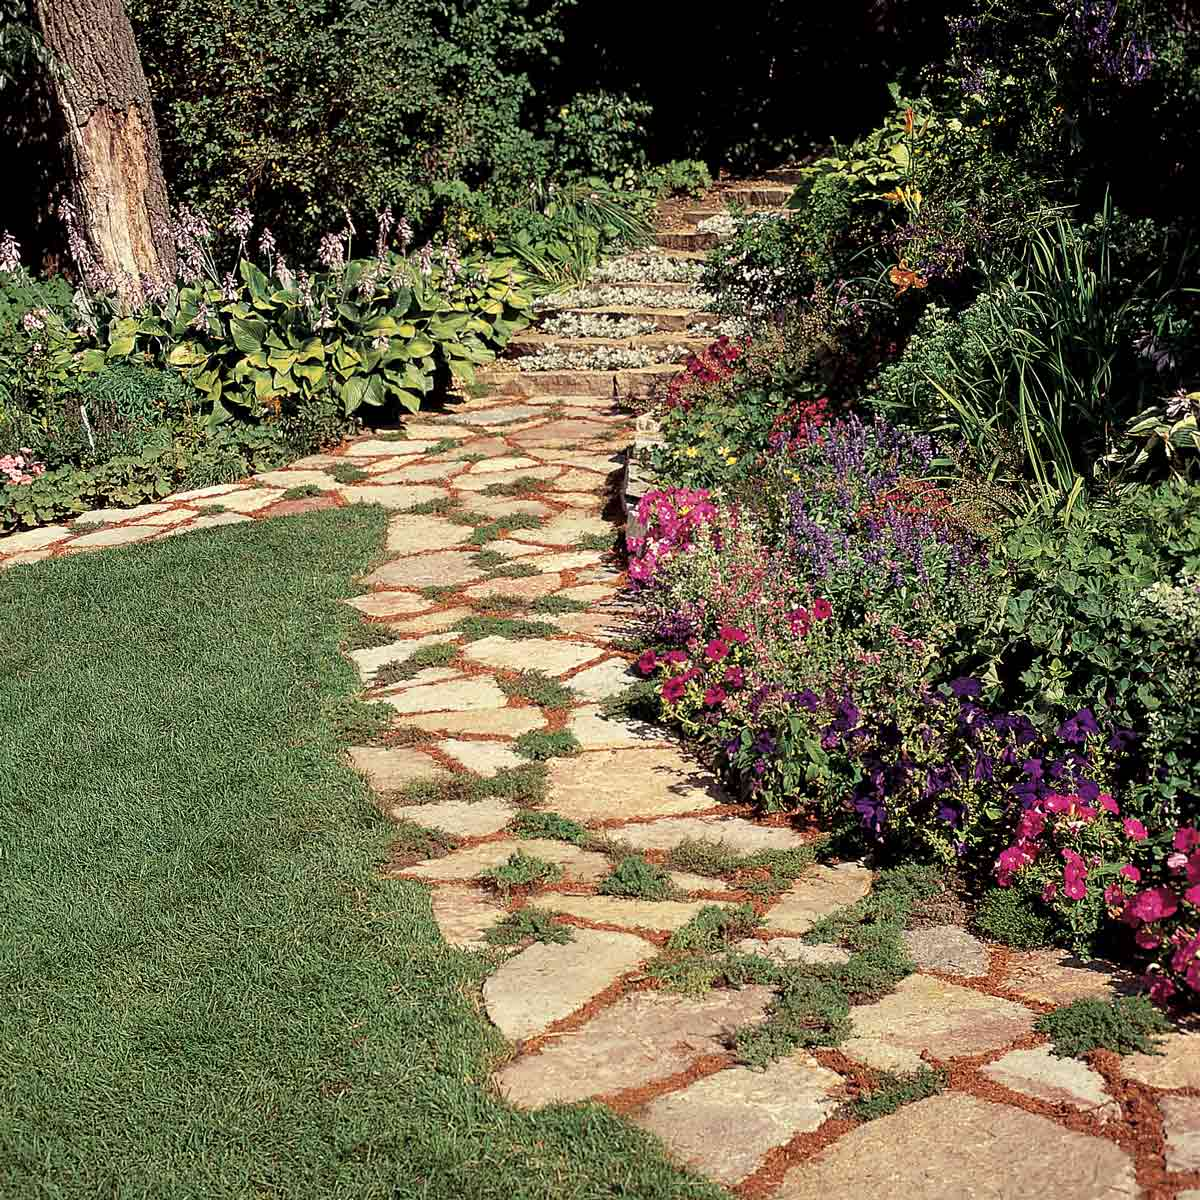 Making A Wonderful Garden Path Ideas Using Stones: Things You Should Keep In Your Mind While Making Garden